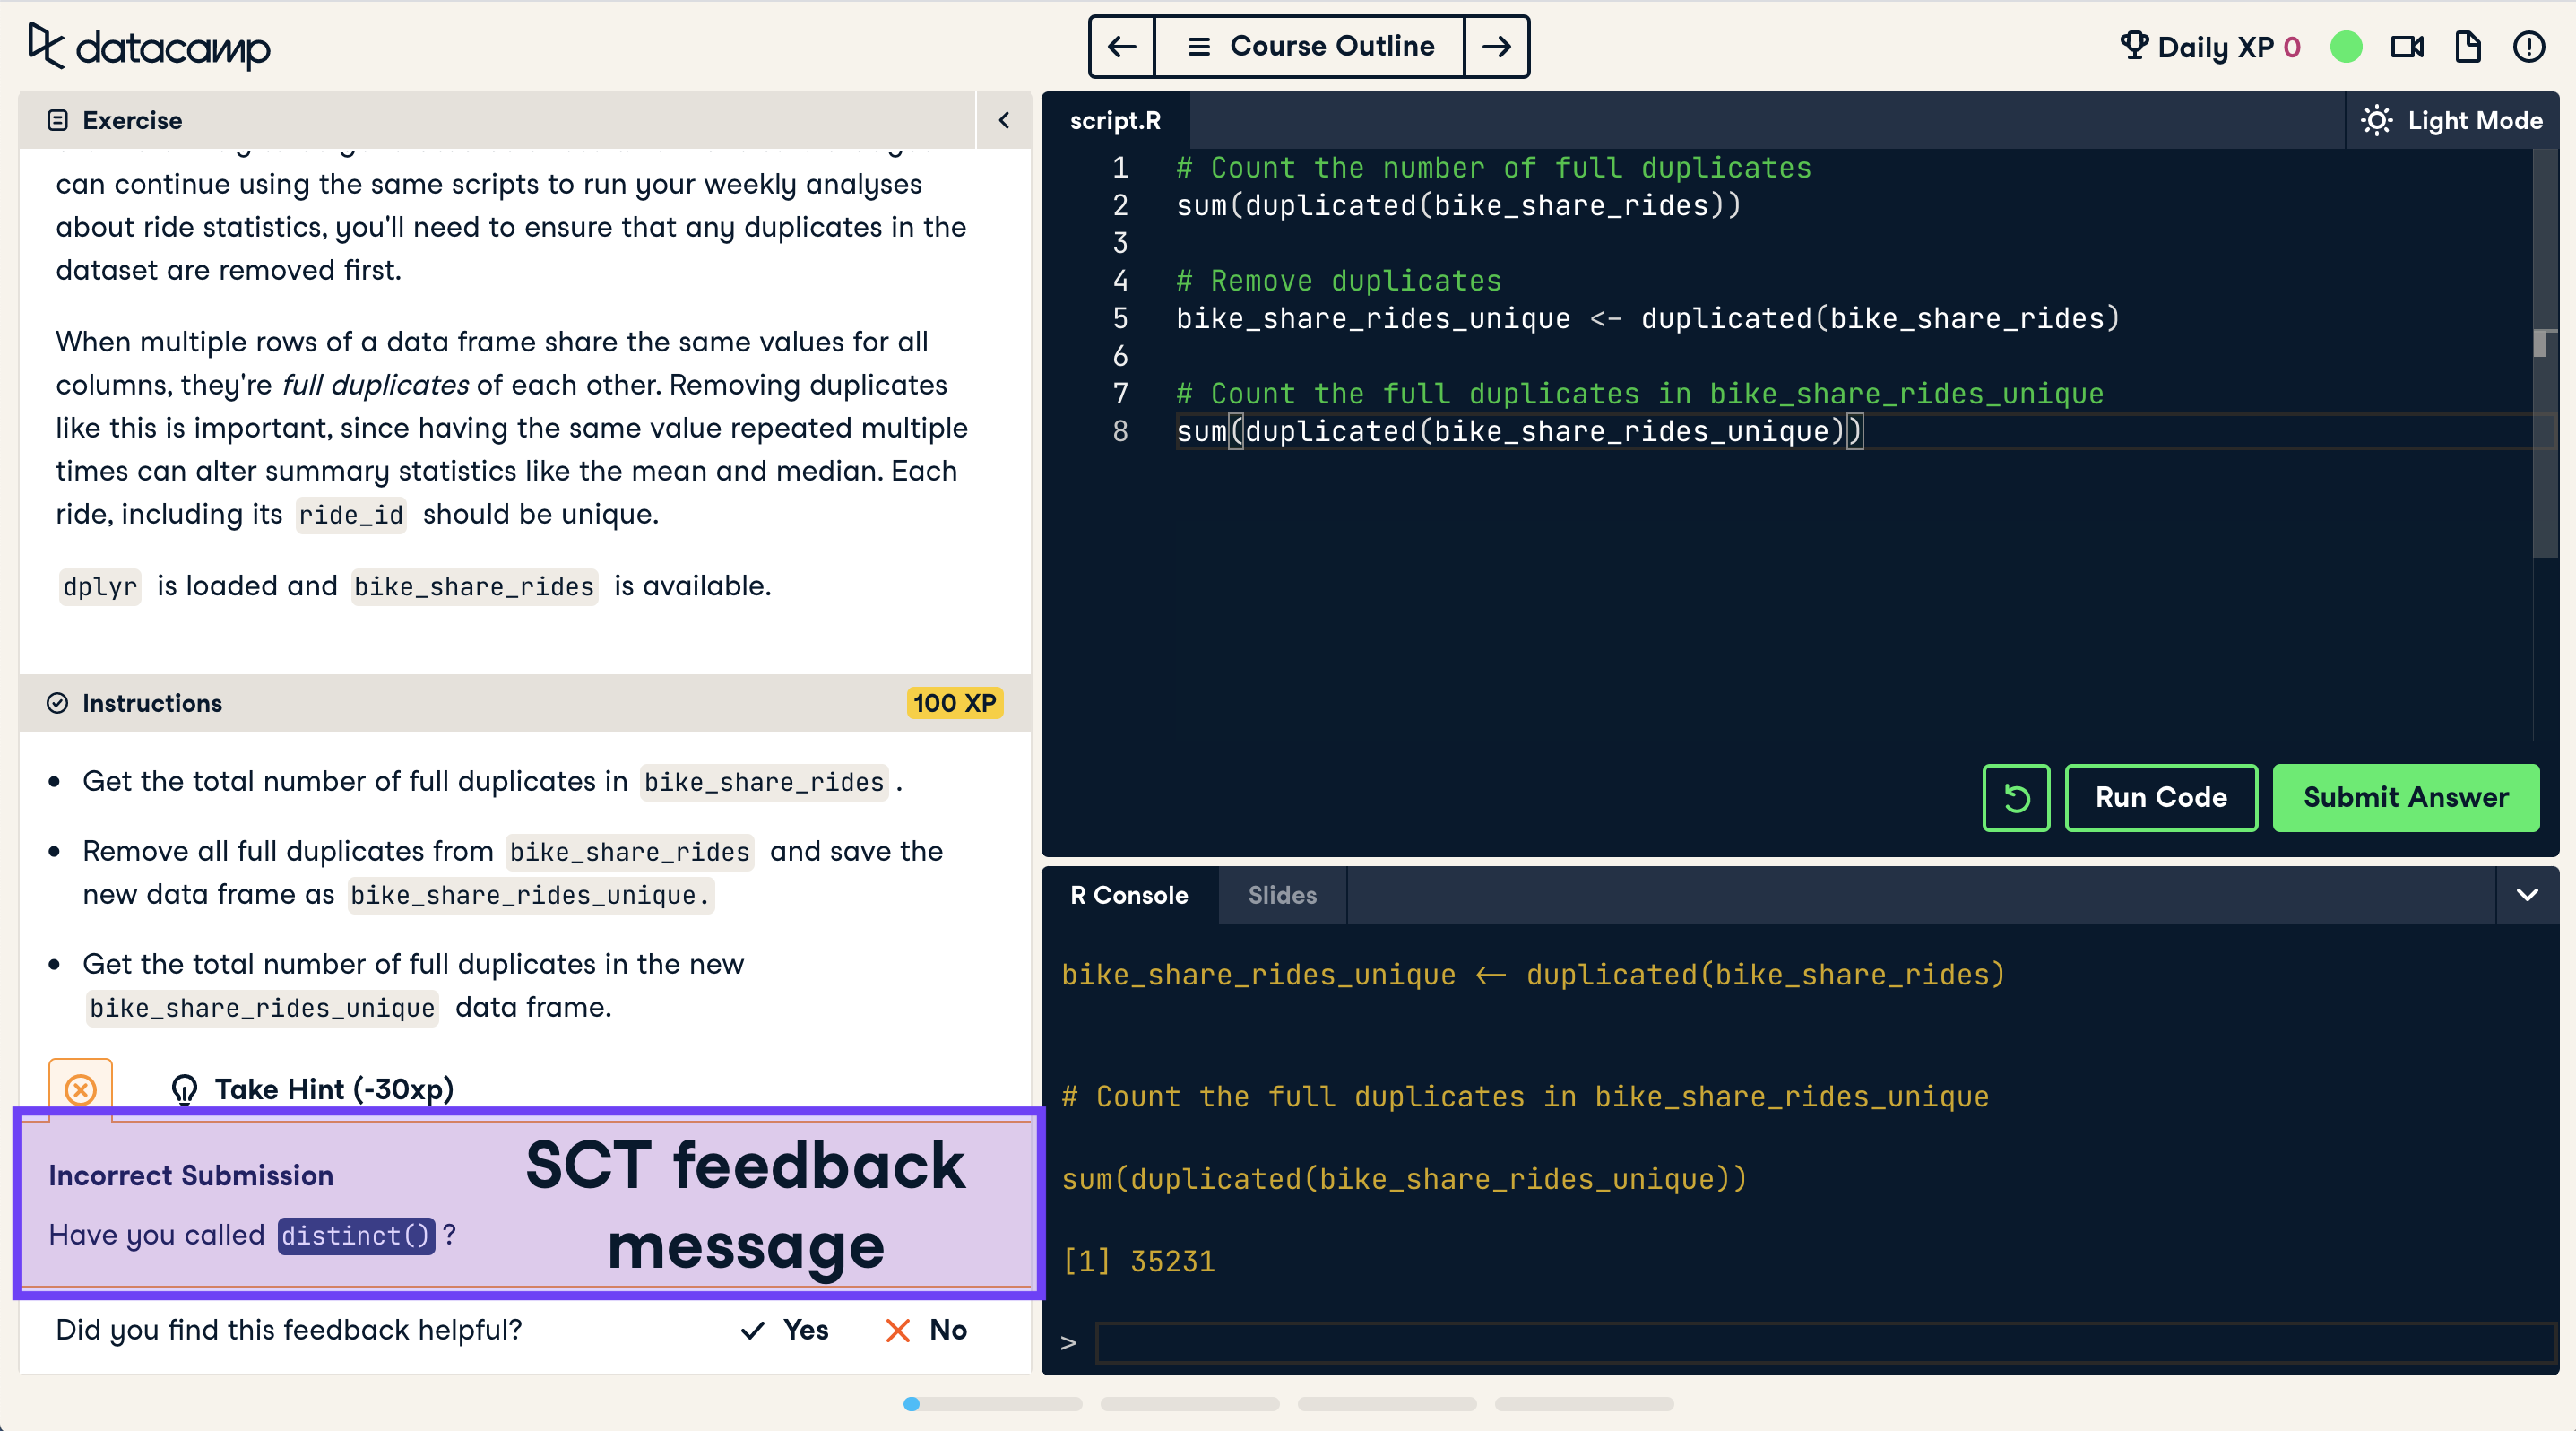 Screenshot of an incorrect coding exercise submission with SCT feedback highlighted